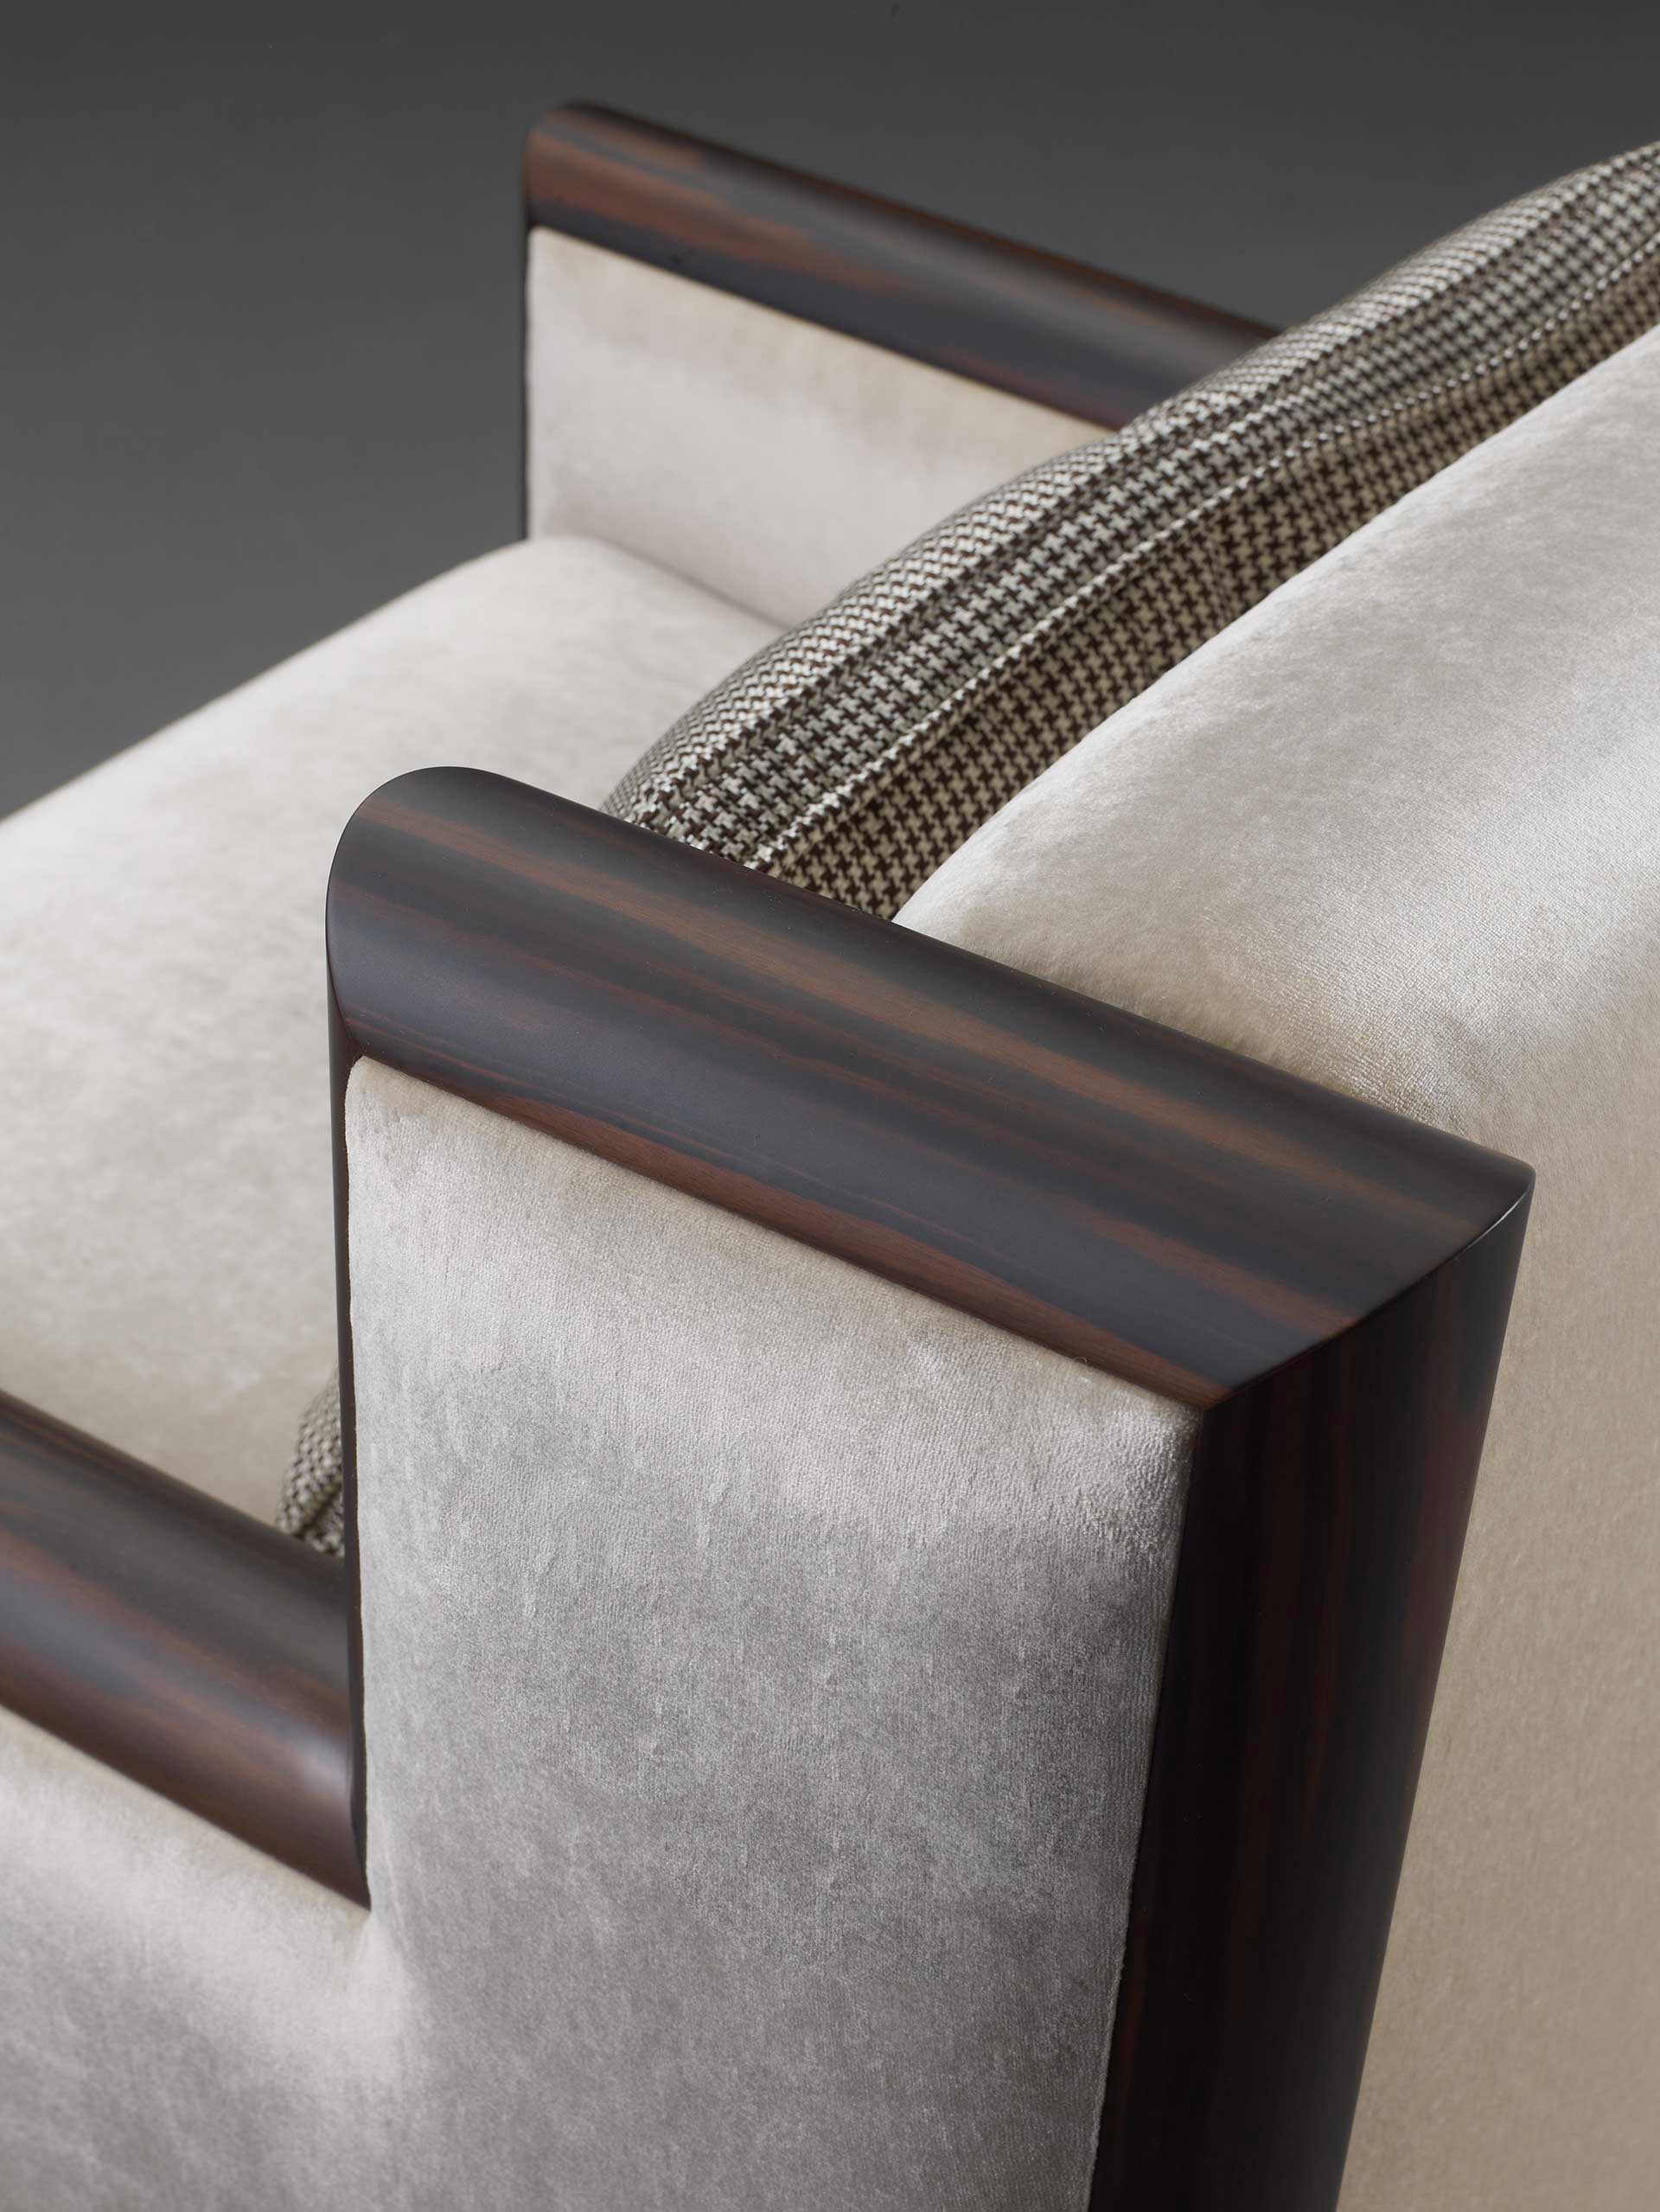 Detail of Ginevra, a wooden armchair covered in leather or fabric with bronze feet, from Promemoria's catalogue | Promemoria